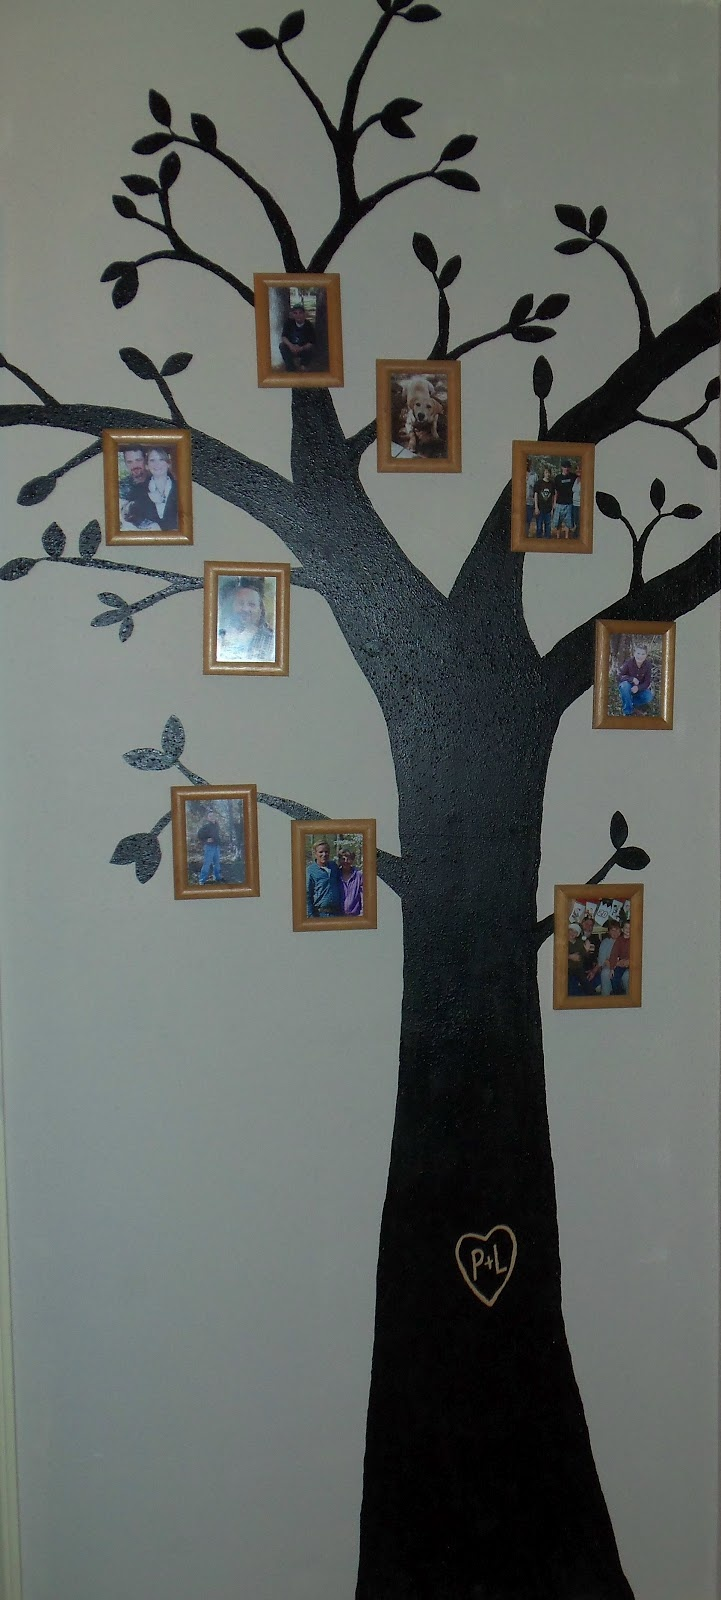 How to paint a tree on your wall - Paint A Tree On Your Wall Then Hang Frames For Your Own Family Tree